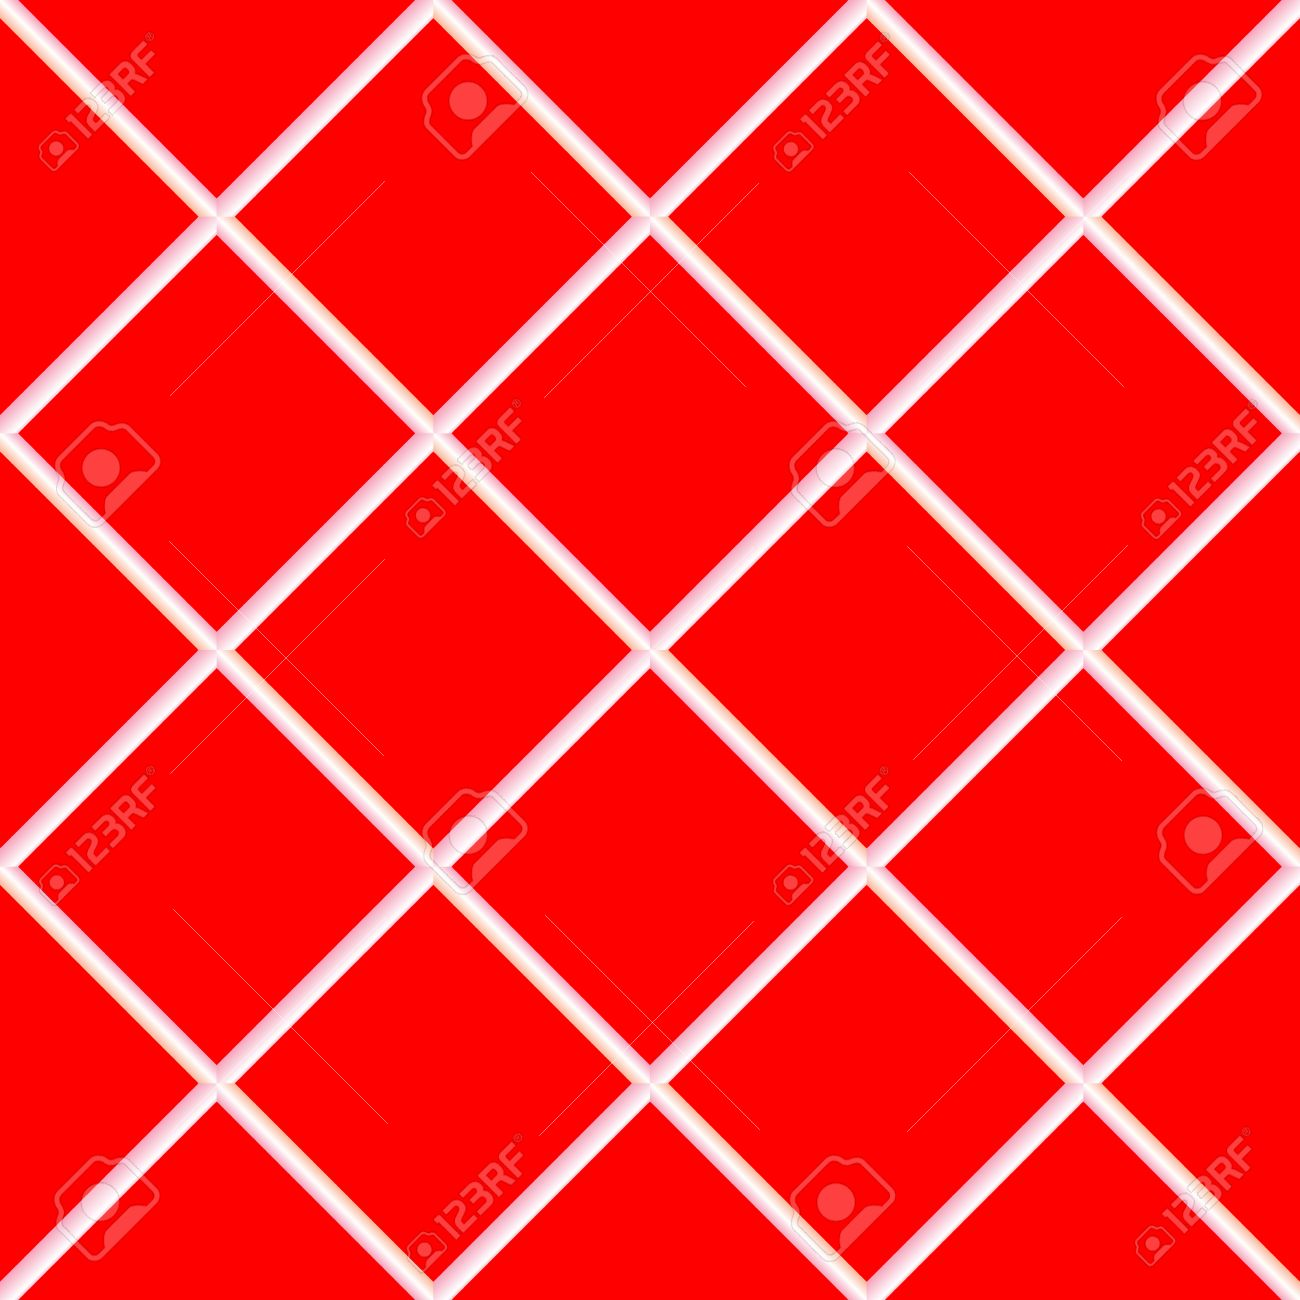 Red floor tiles texture red seamless ceramic tiles abstract red floor tiles texture red seamless ceramic tiles abstract texture stock vector 6570308 floor doublecrazyfo Image collections